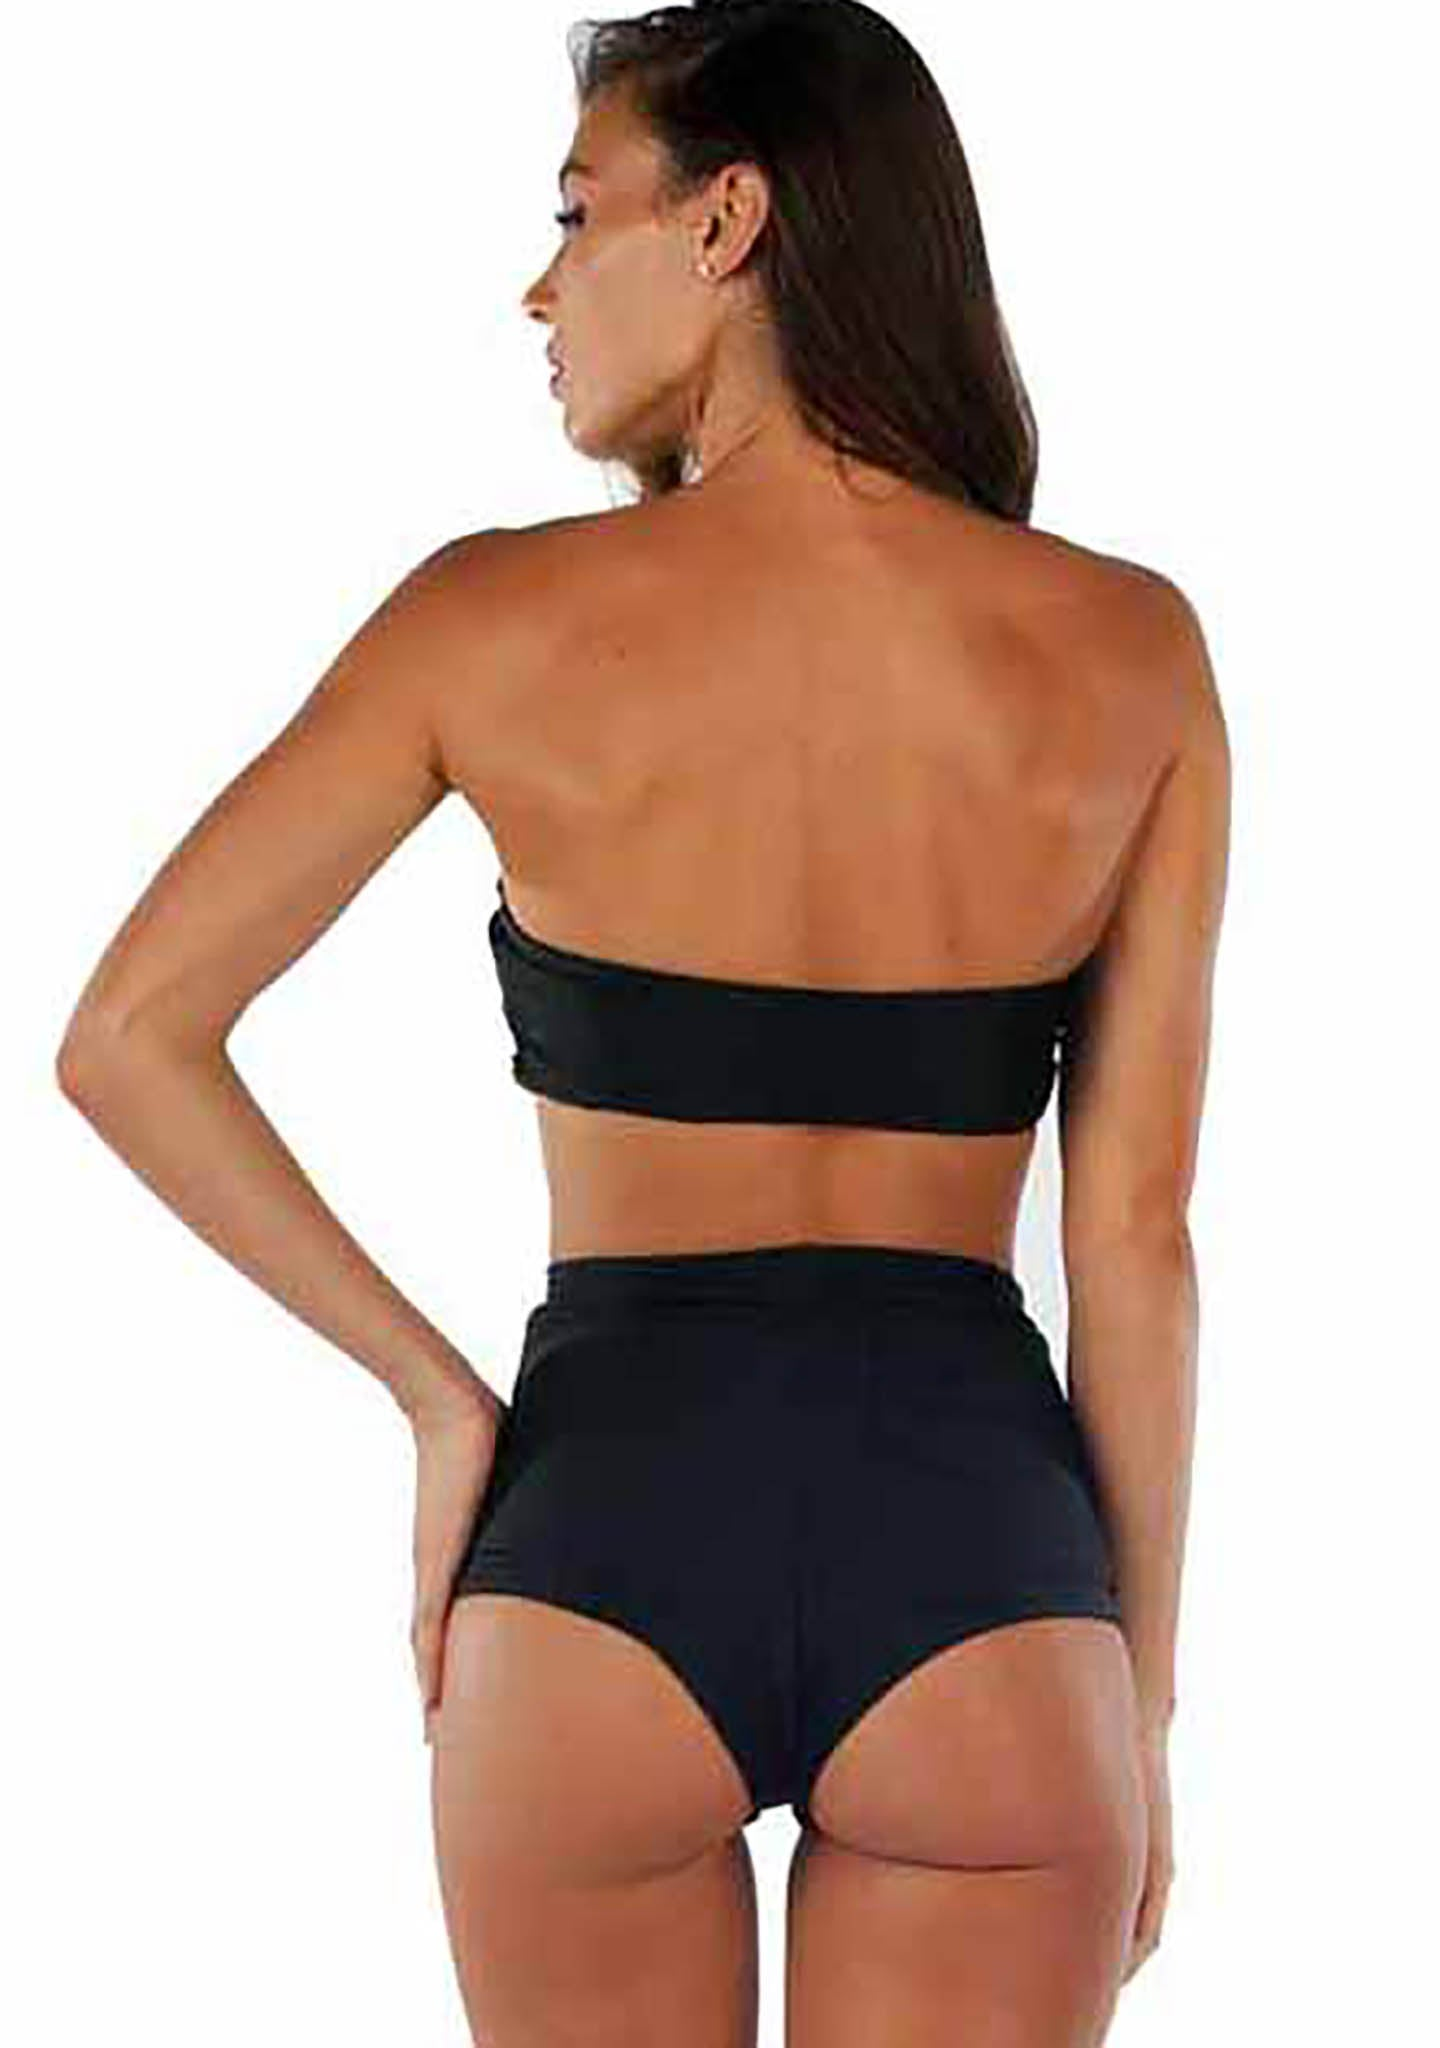 Lolli Swim 108 Degrees Front Tie Bandeau Bikini Top in Black